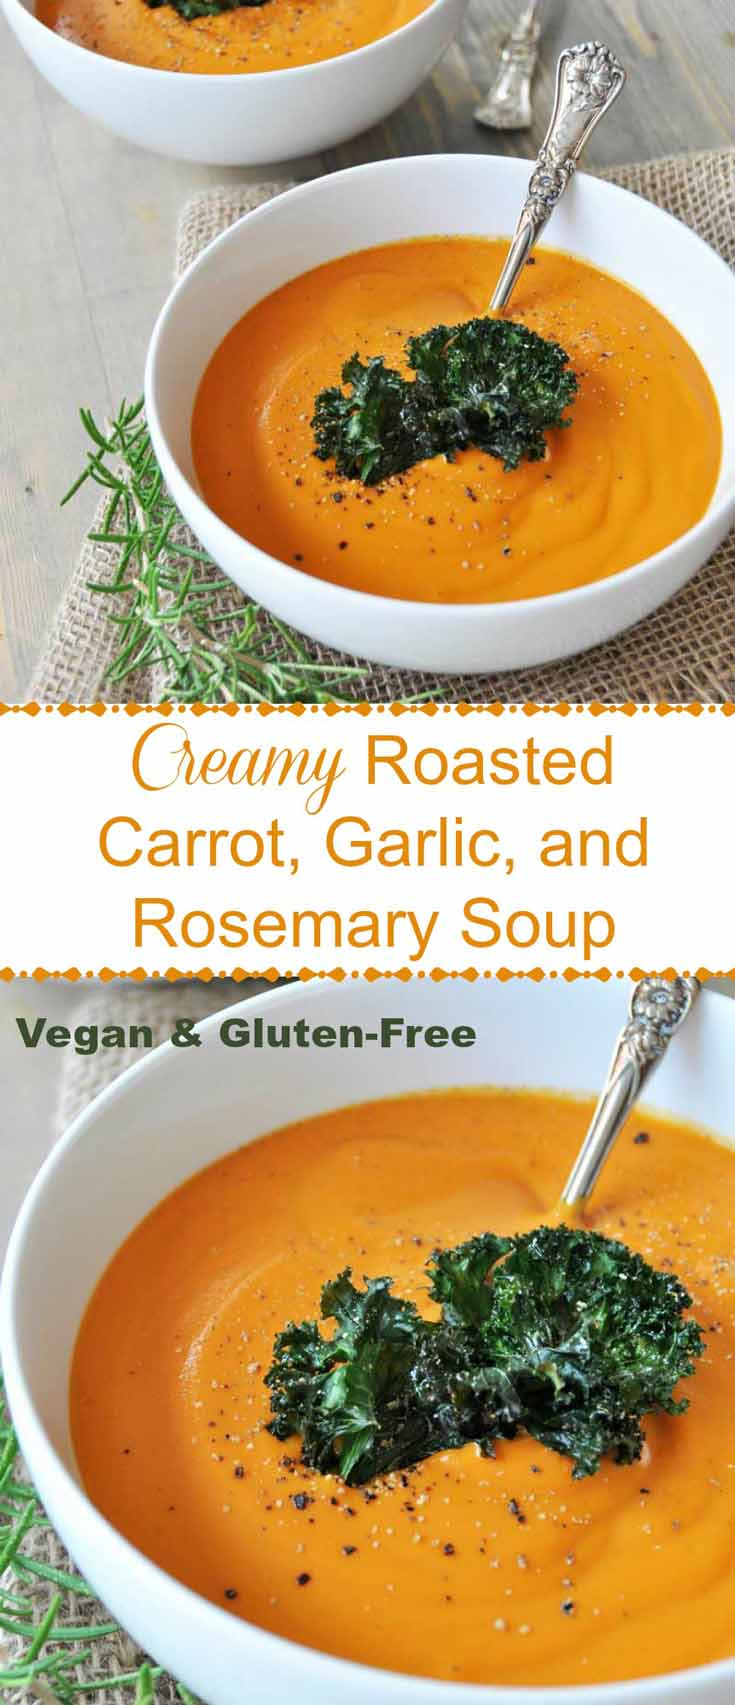 Caramelized roasted carrots, garlic, and rosemary blended into a creamy soup with almond milk. The perfect fall soup recipe. www.veganostiy.com